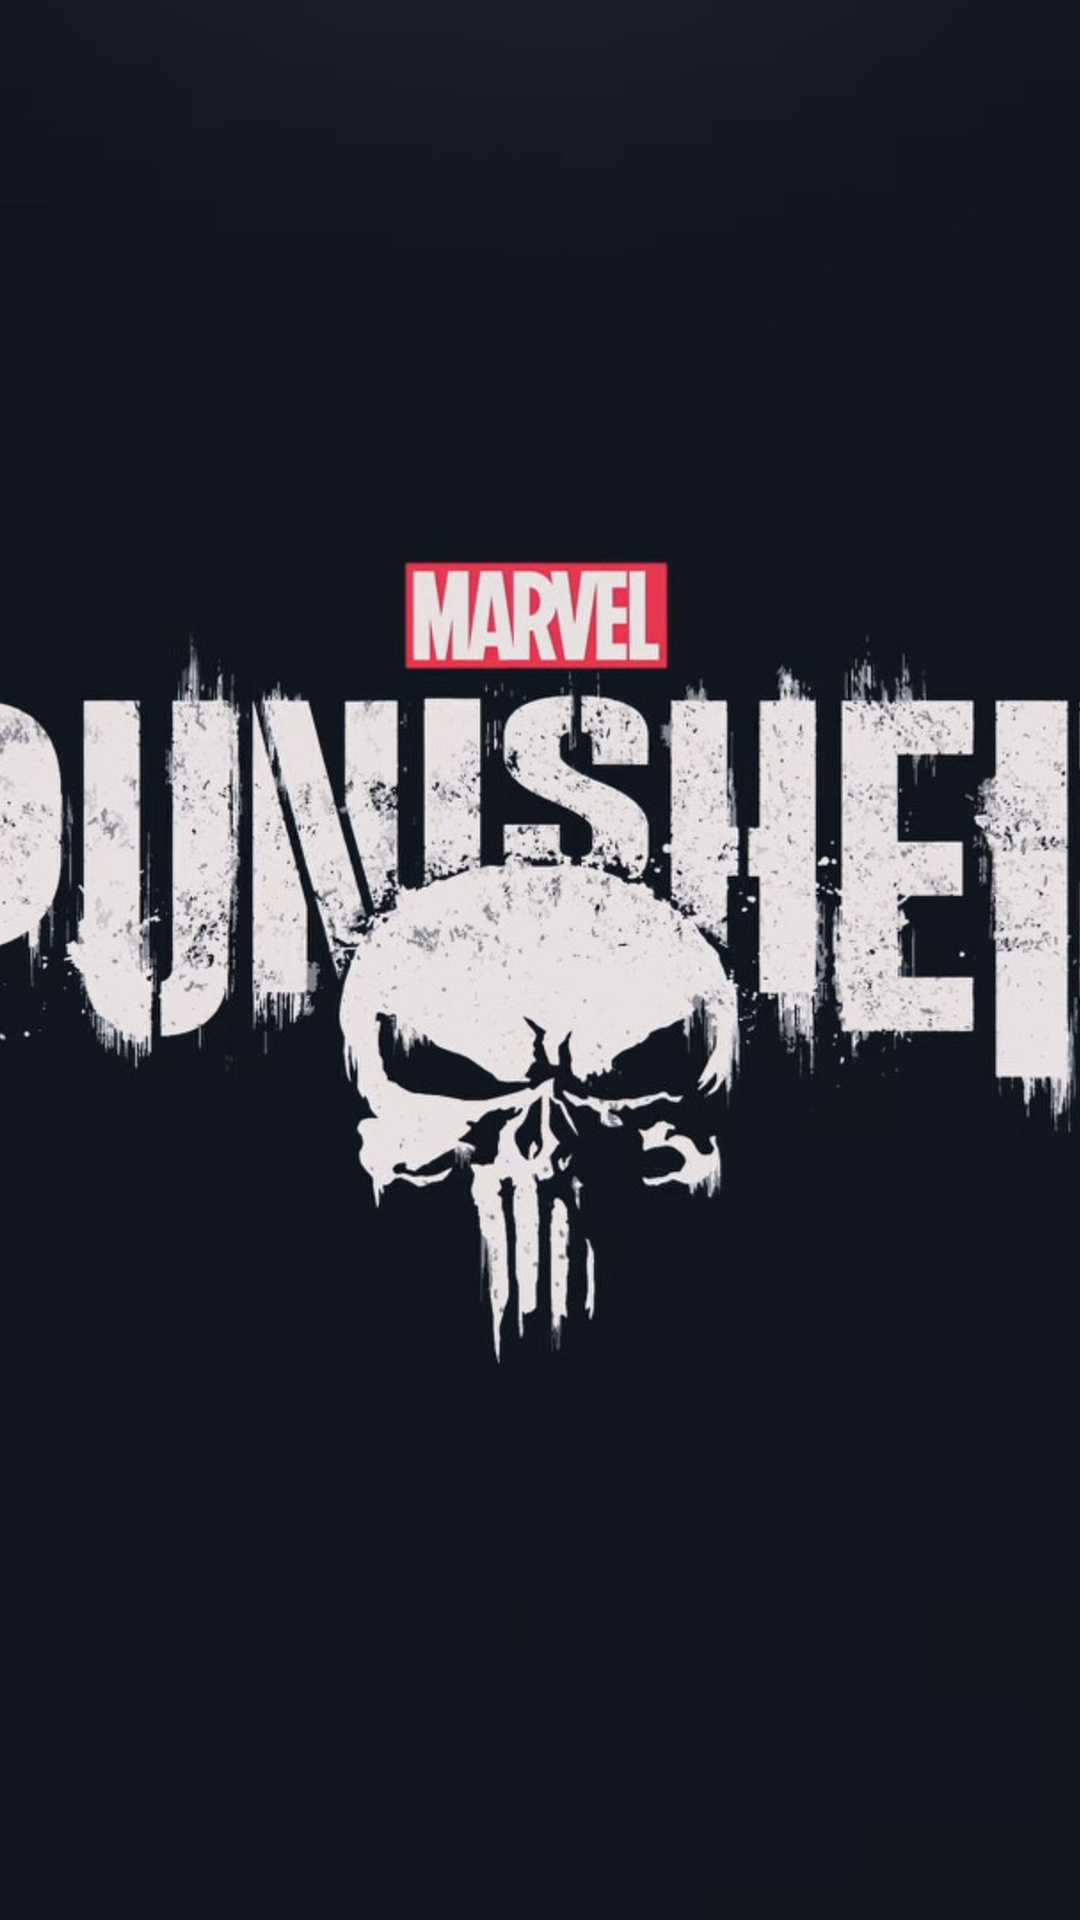 1080x1920 the punisher 2017 hd logo iphone 7,6s,6 plus, pixel xl